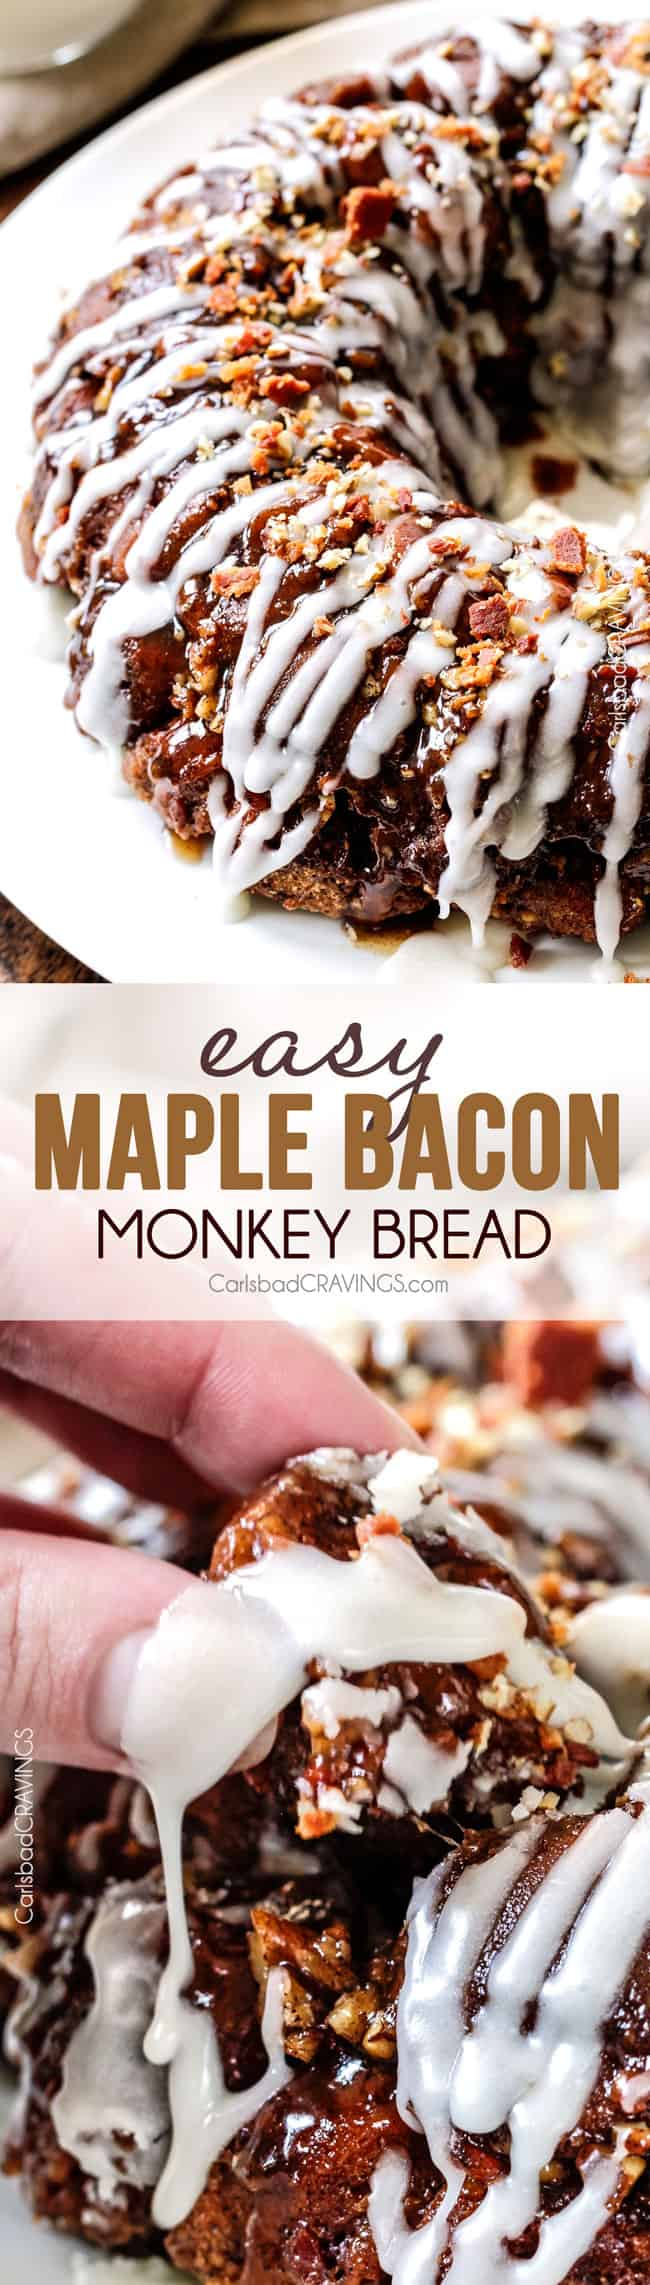 Maple Bacon Monkey Bread made easy with refrigerated cinnamon rolls ...